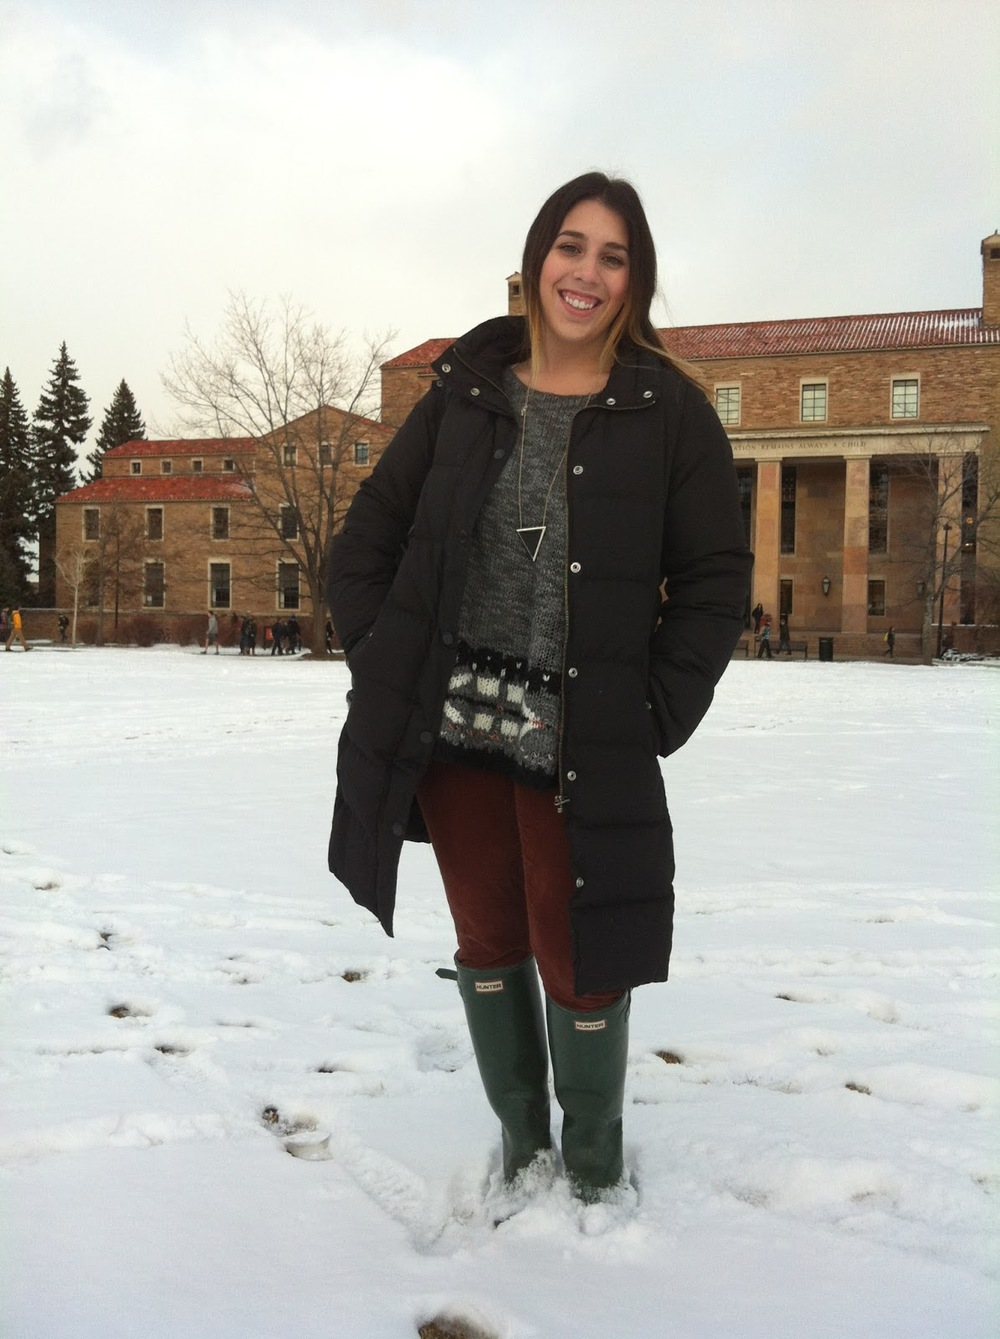 Molli Vita,  University of Colorado at Boulder student wears a J.Crew Puffer Jacket gray pattern Free People sweater over a pair of brick maroon Lauren Conrad for Kohls corduroys tucked into green Hunter Rain rain and snow boots. She is also wearing an interesting golden chain with a black obsidian triangle Luna B necklace / pendant